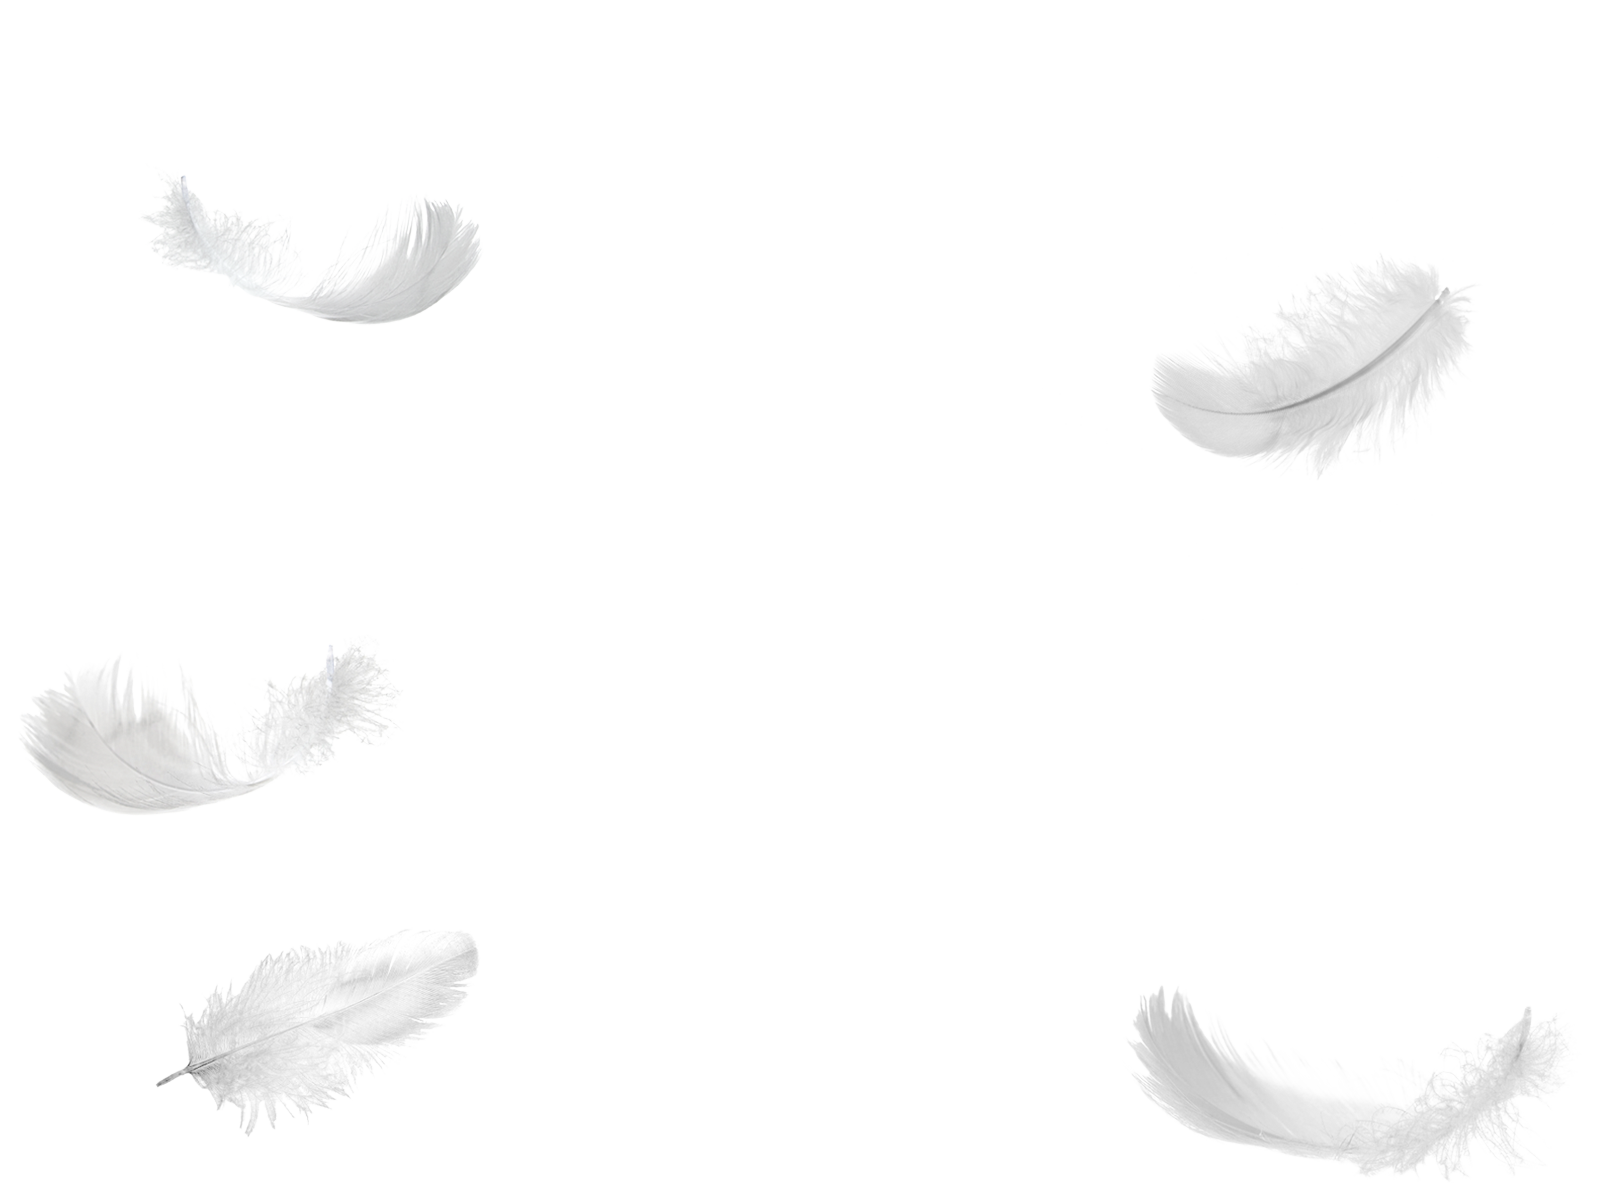 1495816576five-feathers-falling-no-background-png.png